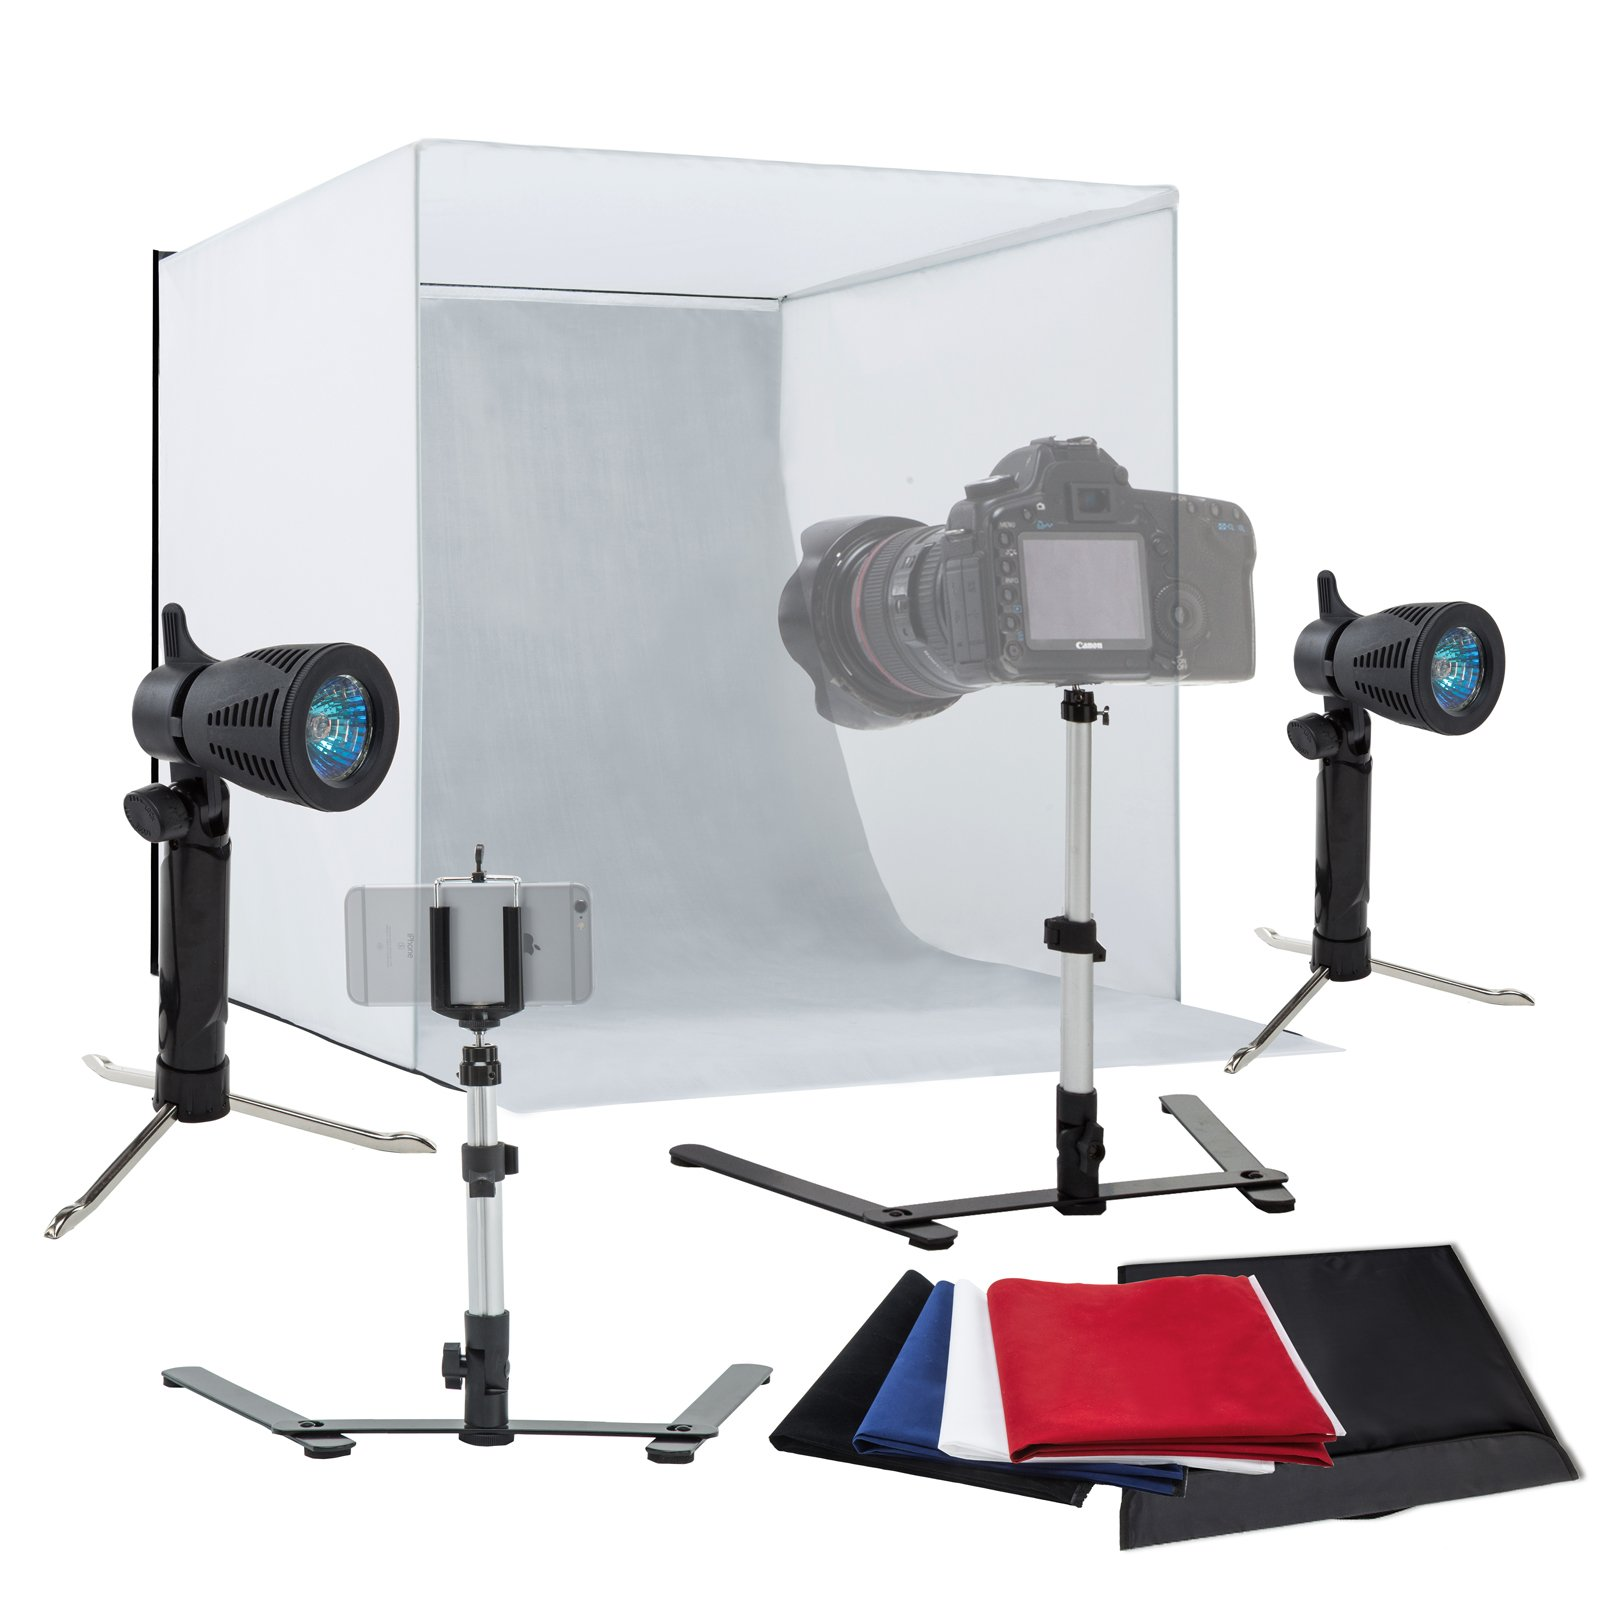 SUNCOO 18'' Photo Studio Box Photography Light Shooting Tent Folding Photo Shooting Box with Mini Camera Stand and Backdrops by SUNCOO